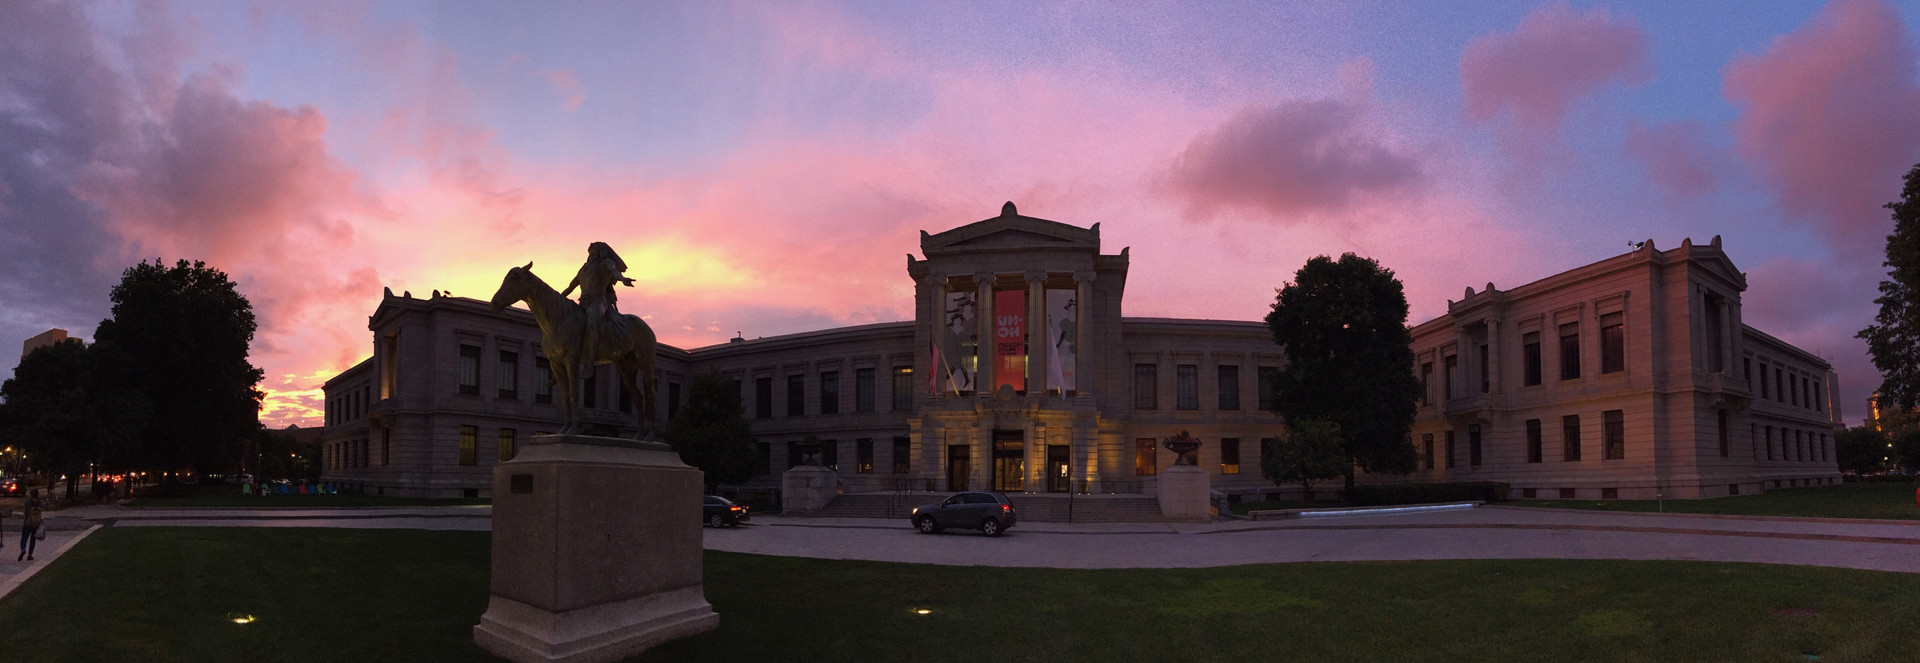 MFA at Sunset